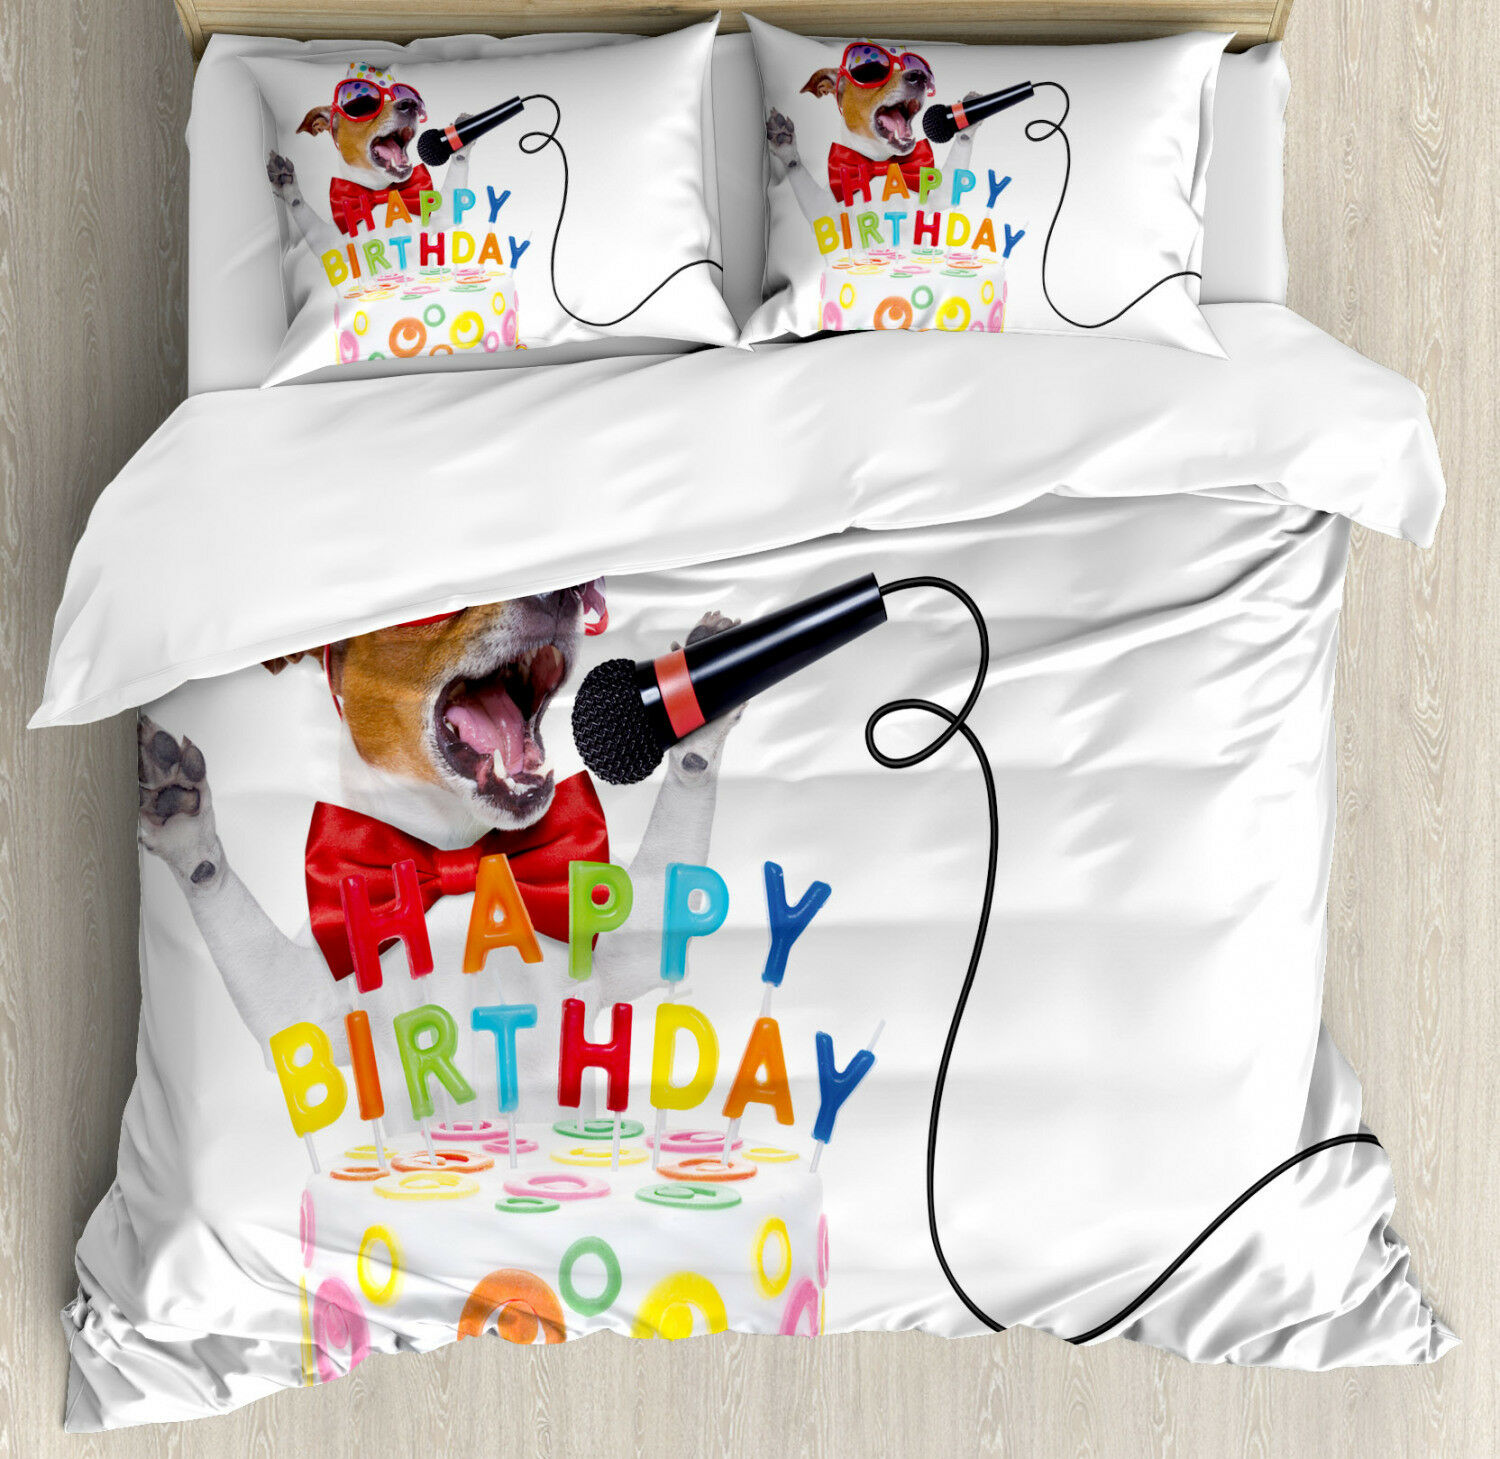 colorful Duvet Cover Set with Pillow Shams Birthday Musician Dog Print